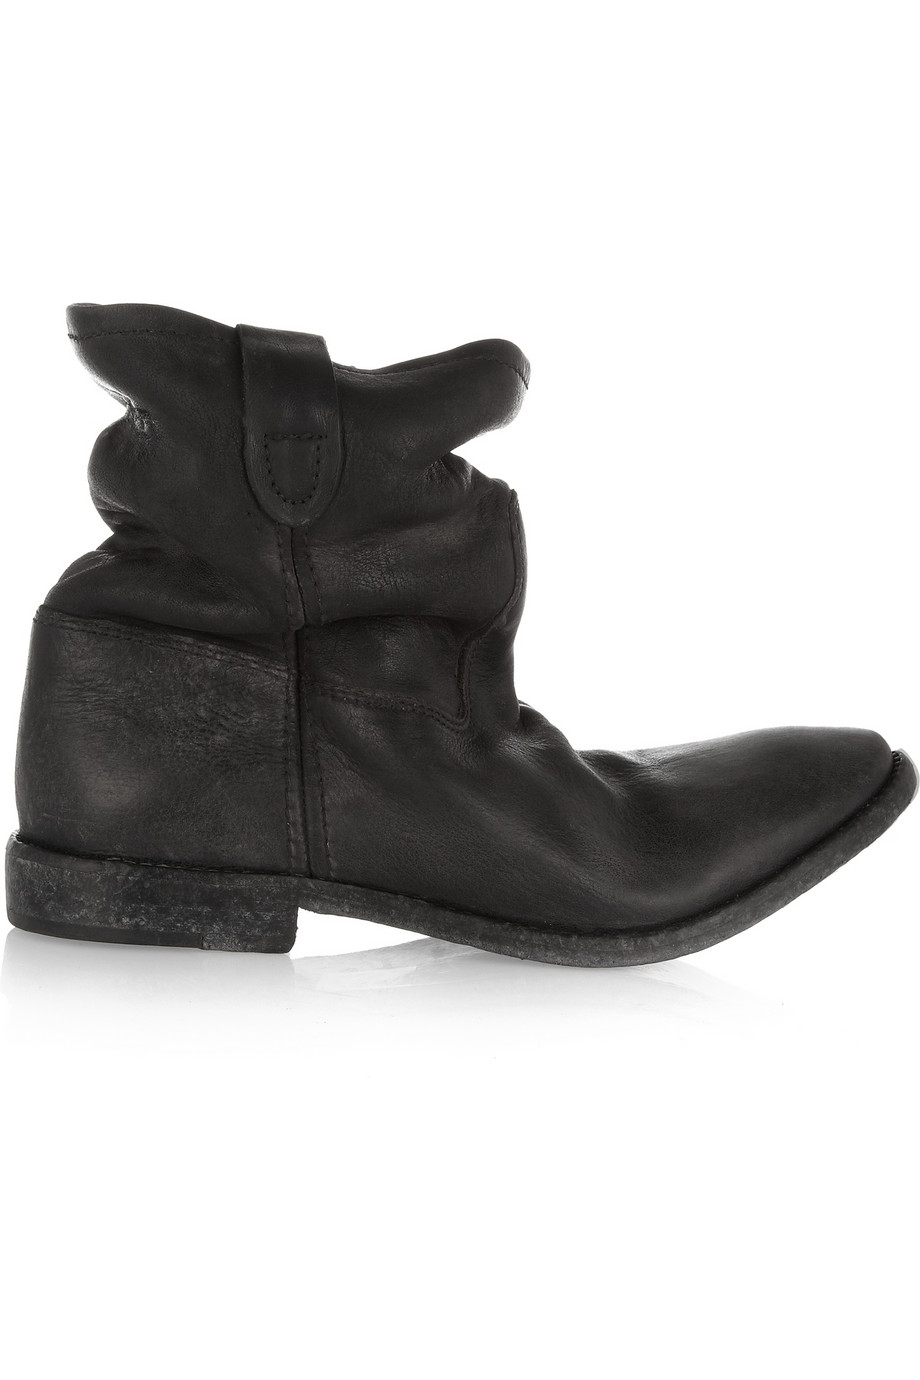 Isabel marant Jenny Slouchy Leather Ankle Boots in Black   Lyst